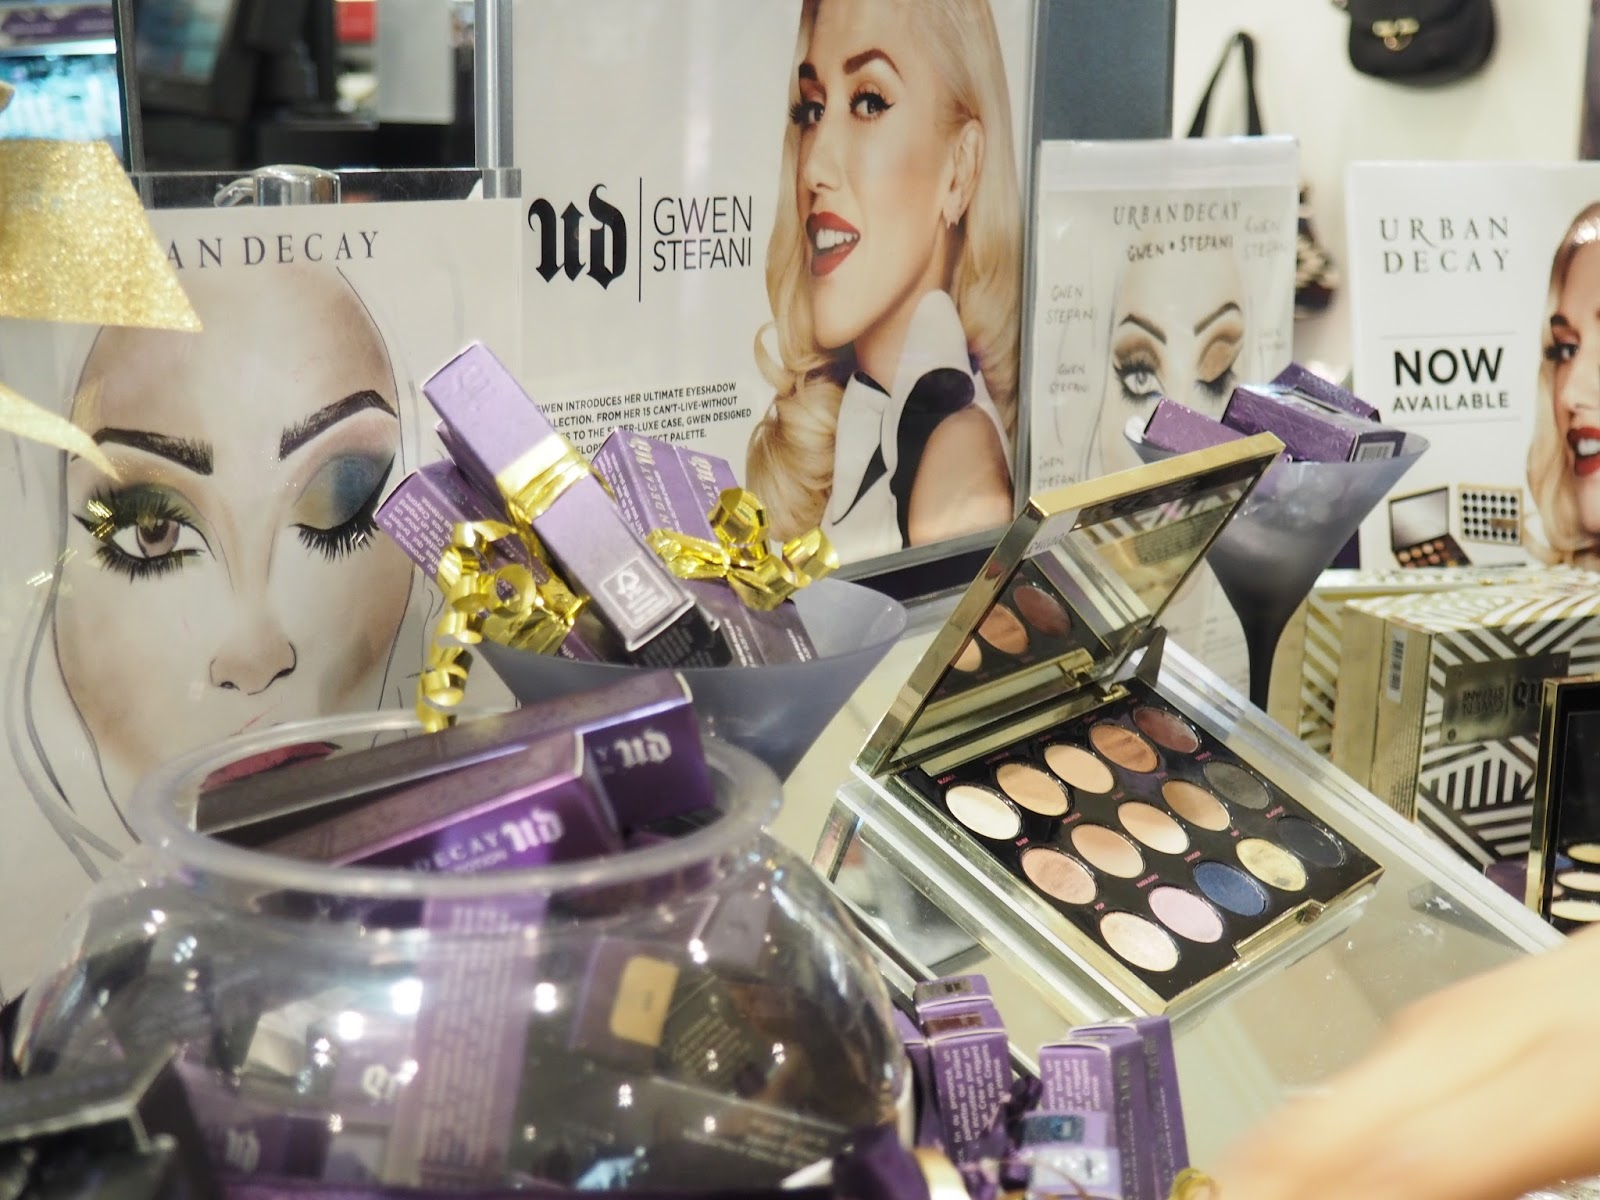 Urban Decay Gwen Stefani Leicester Highcross Shopping